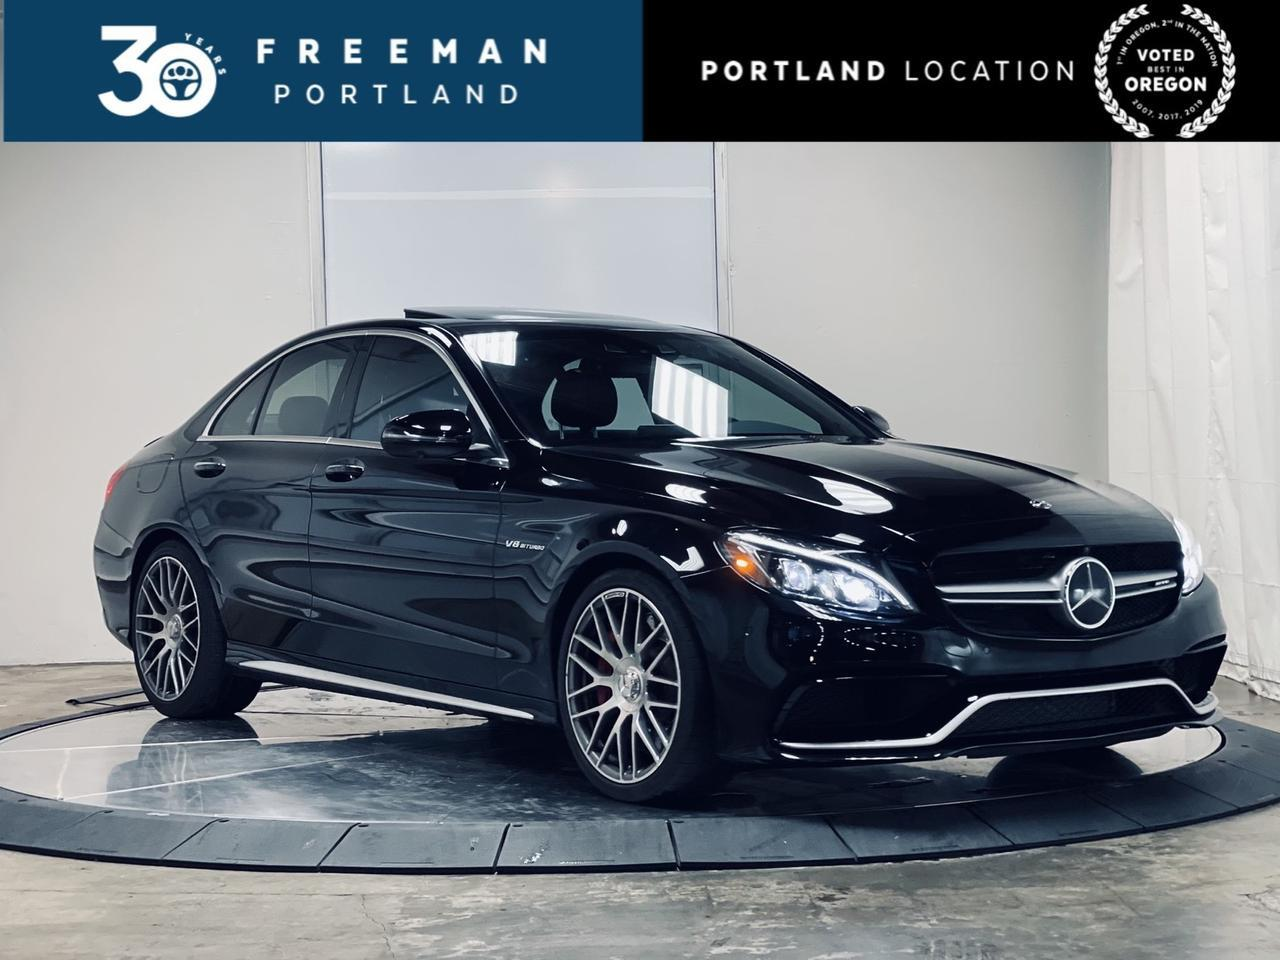 2018 Mercedes-Benz C63 S AMG DISTRONIC Performance Exhaust Carbon Fiber Trim Portland OR